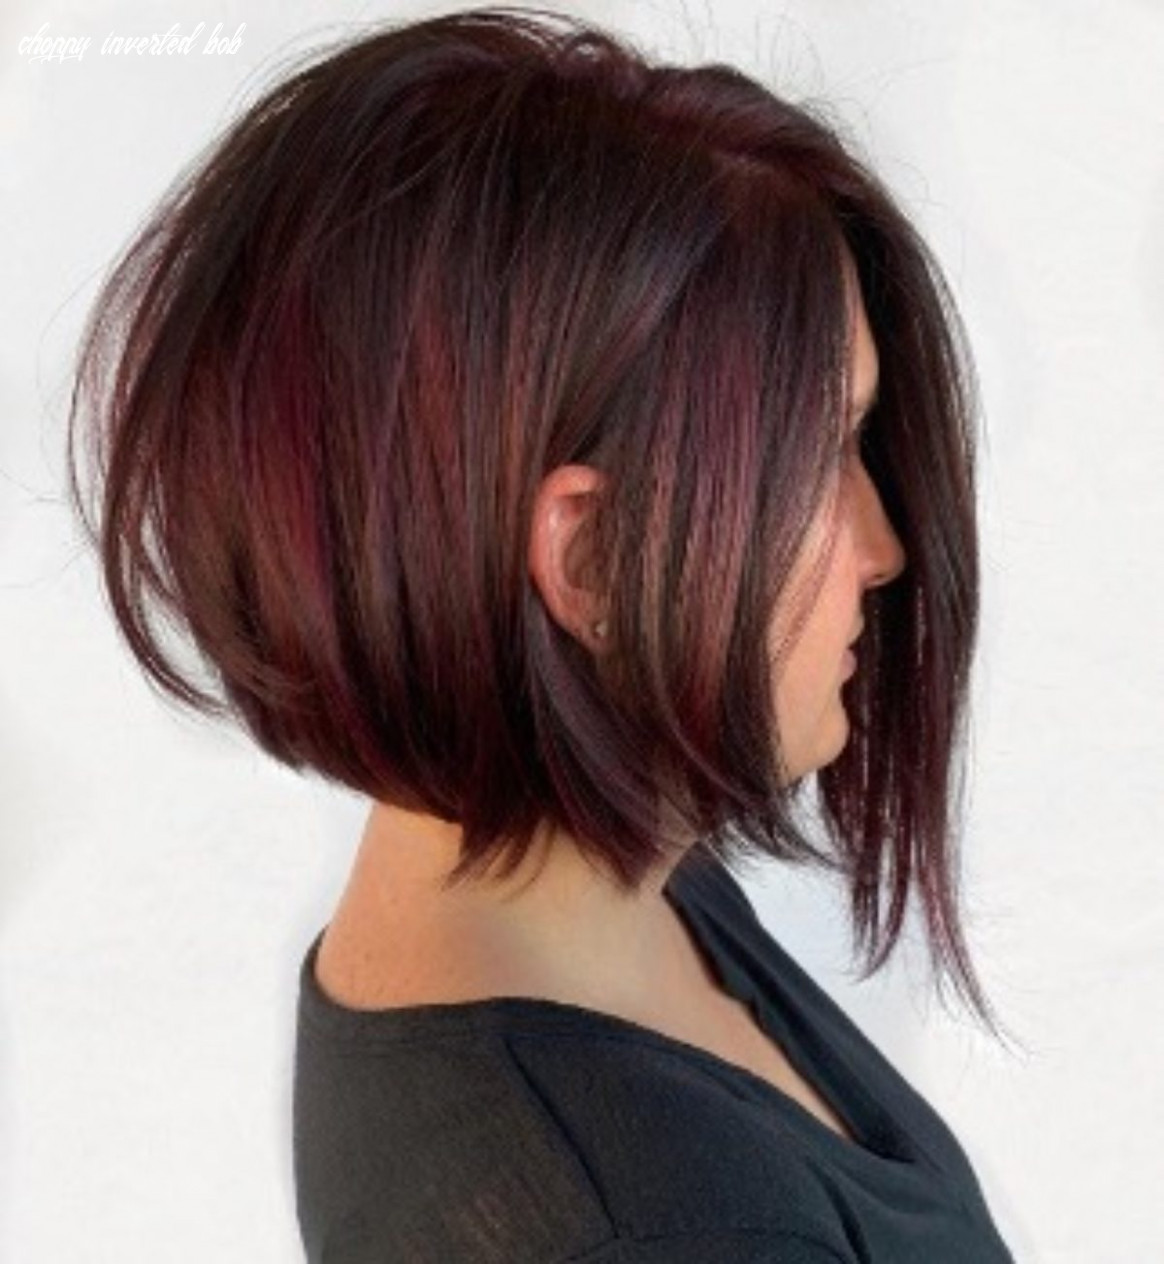 Inspiring Versatility and Classy Feel of a Stylish Inverted Bob ...